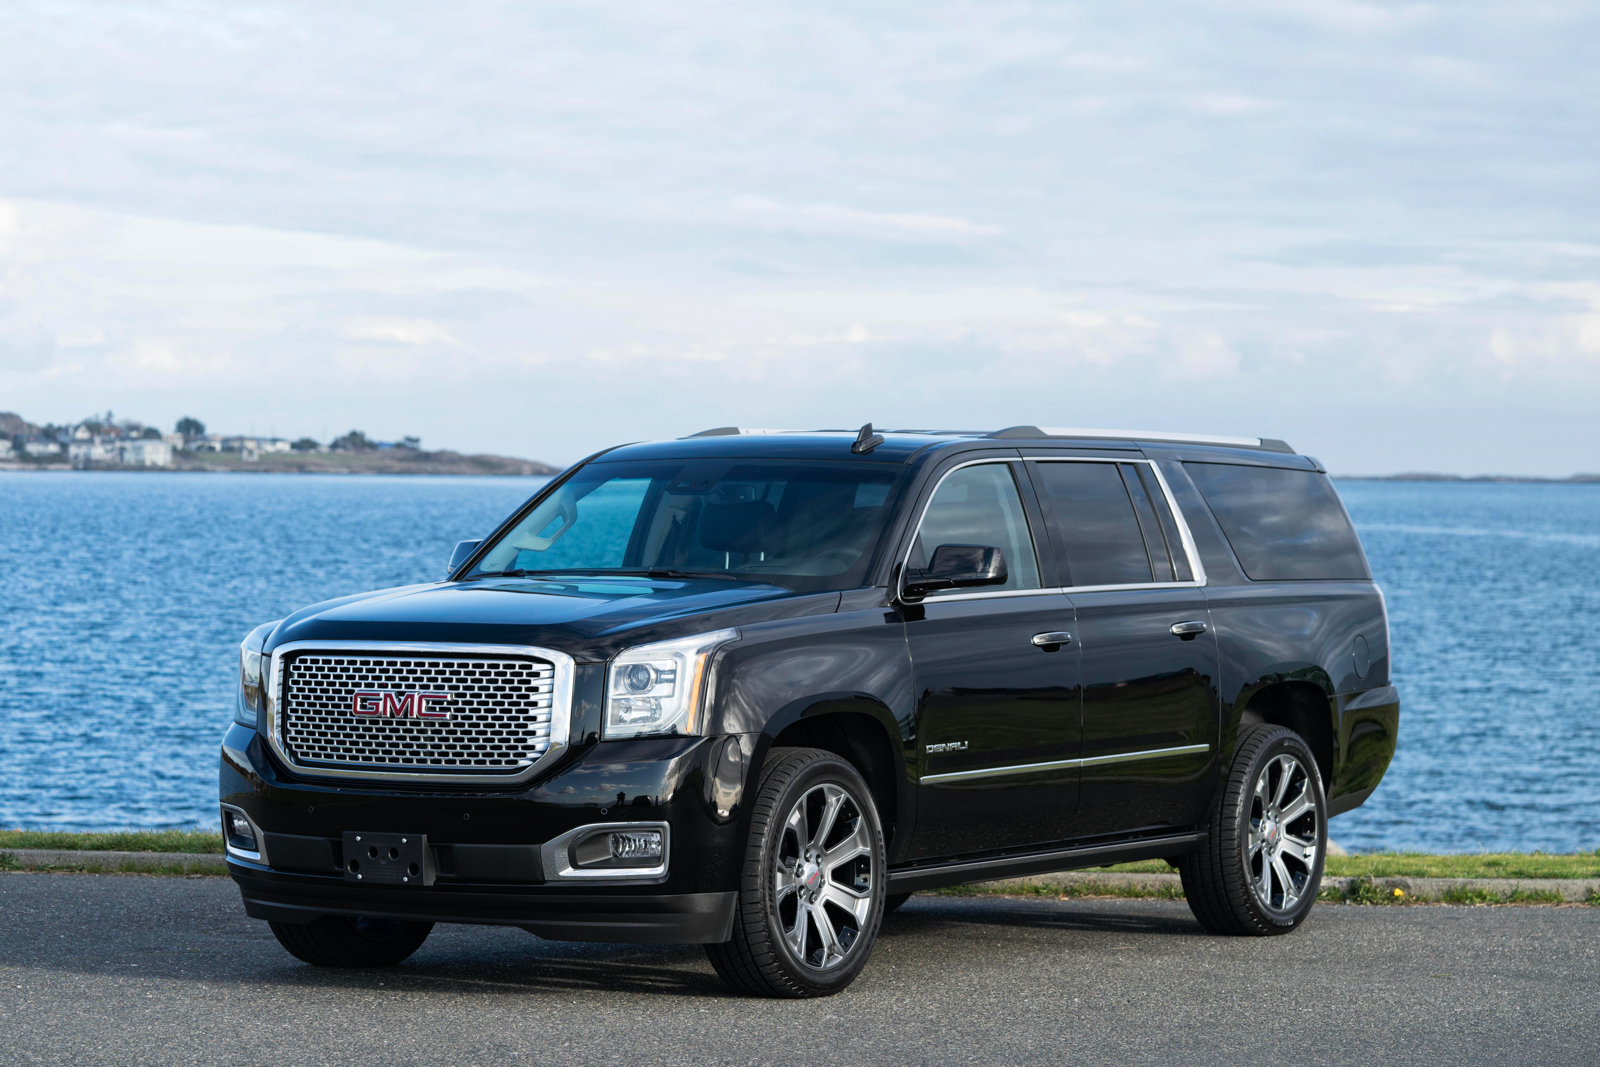 masthead suv luxury mp gmc mh yukon xl image the denali for lg full size suvs